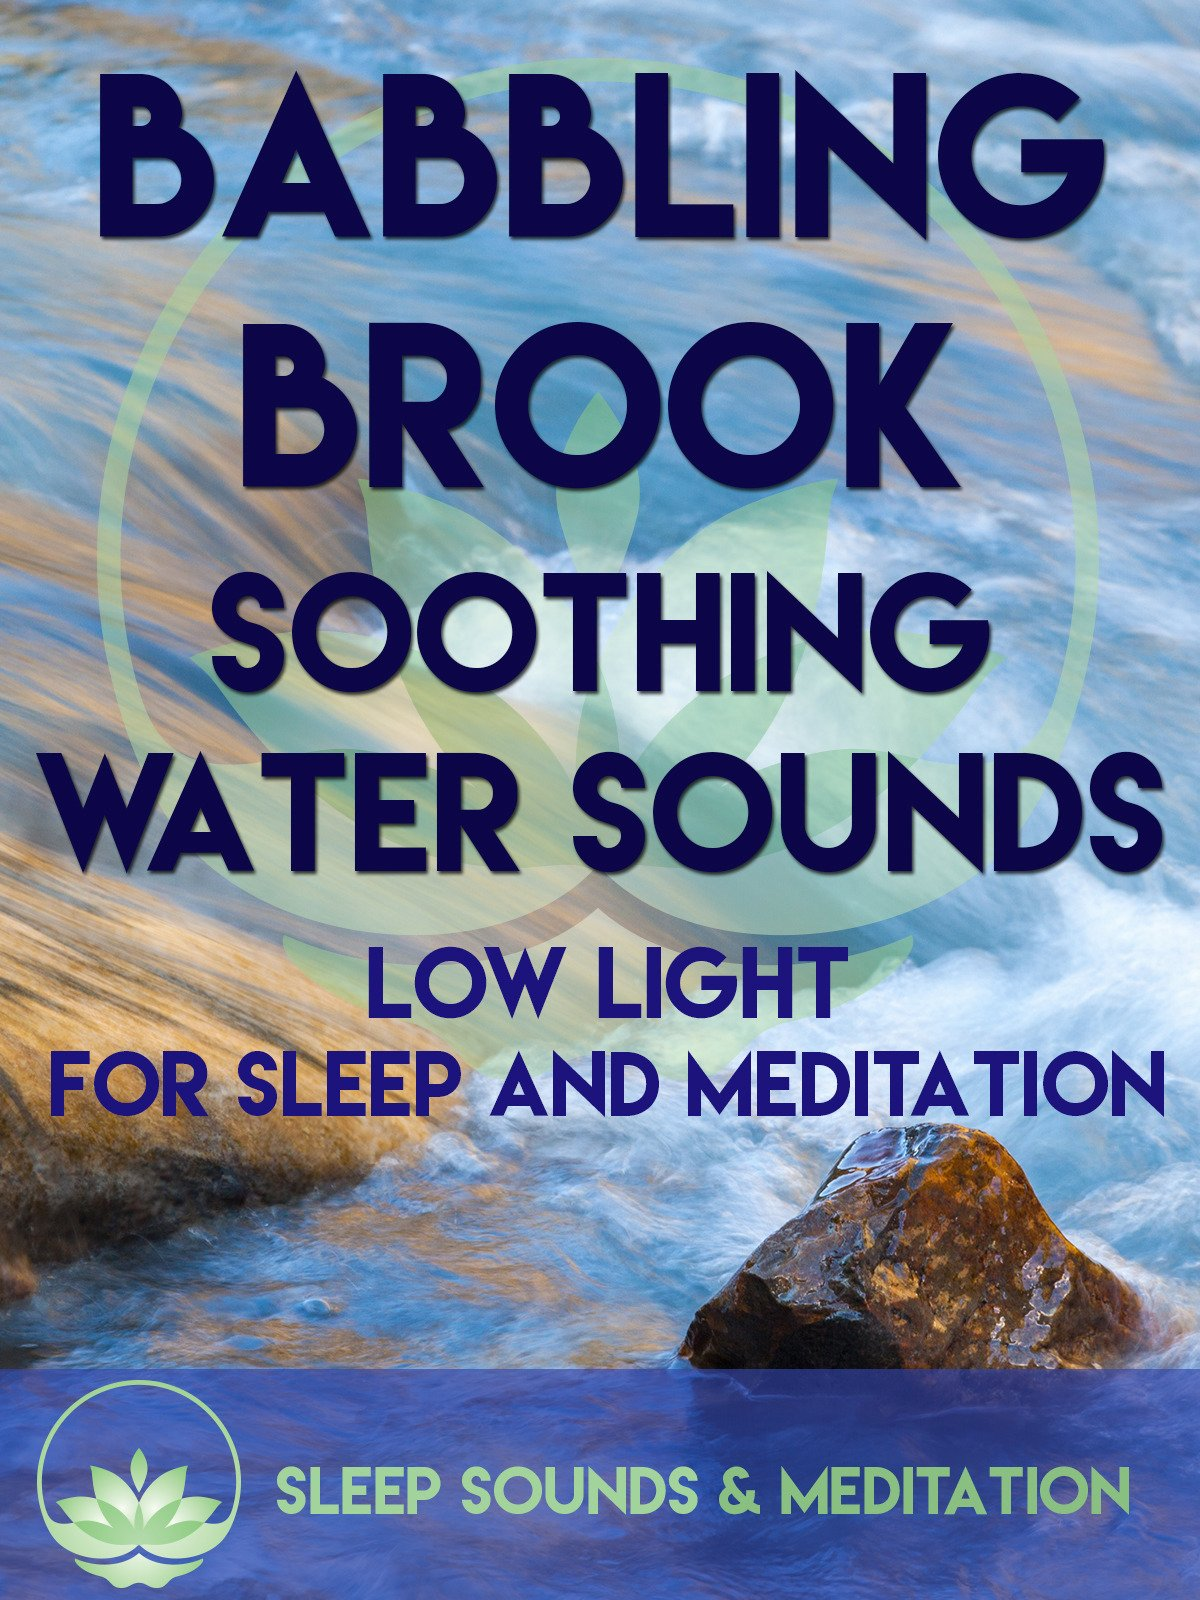 Soothing Babbling Brook Soothing Water Sounds, Low Light for Sleep & Meditation on Amazon Prime Instant Video UK